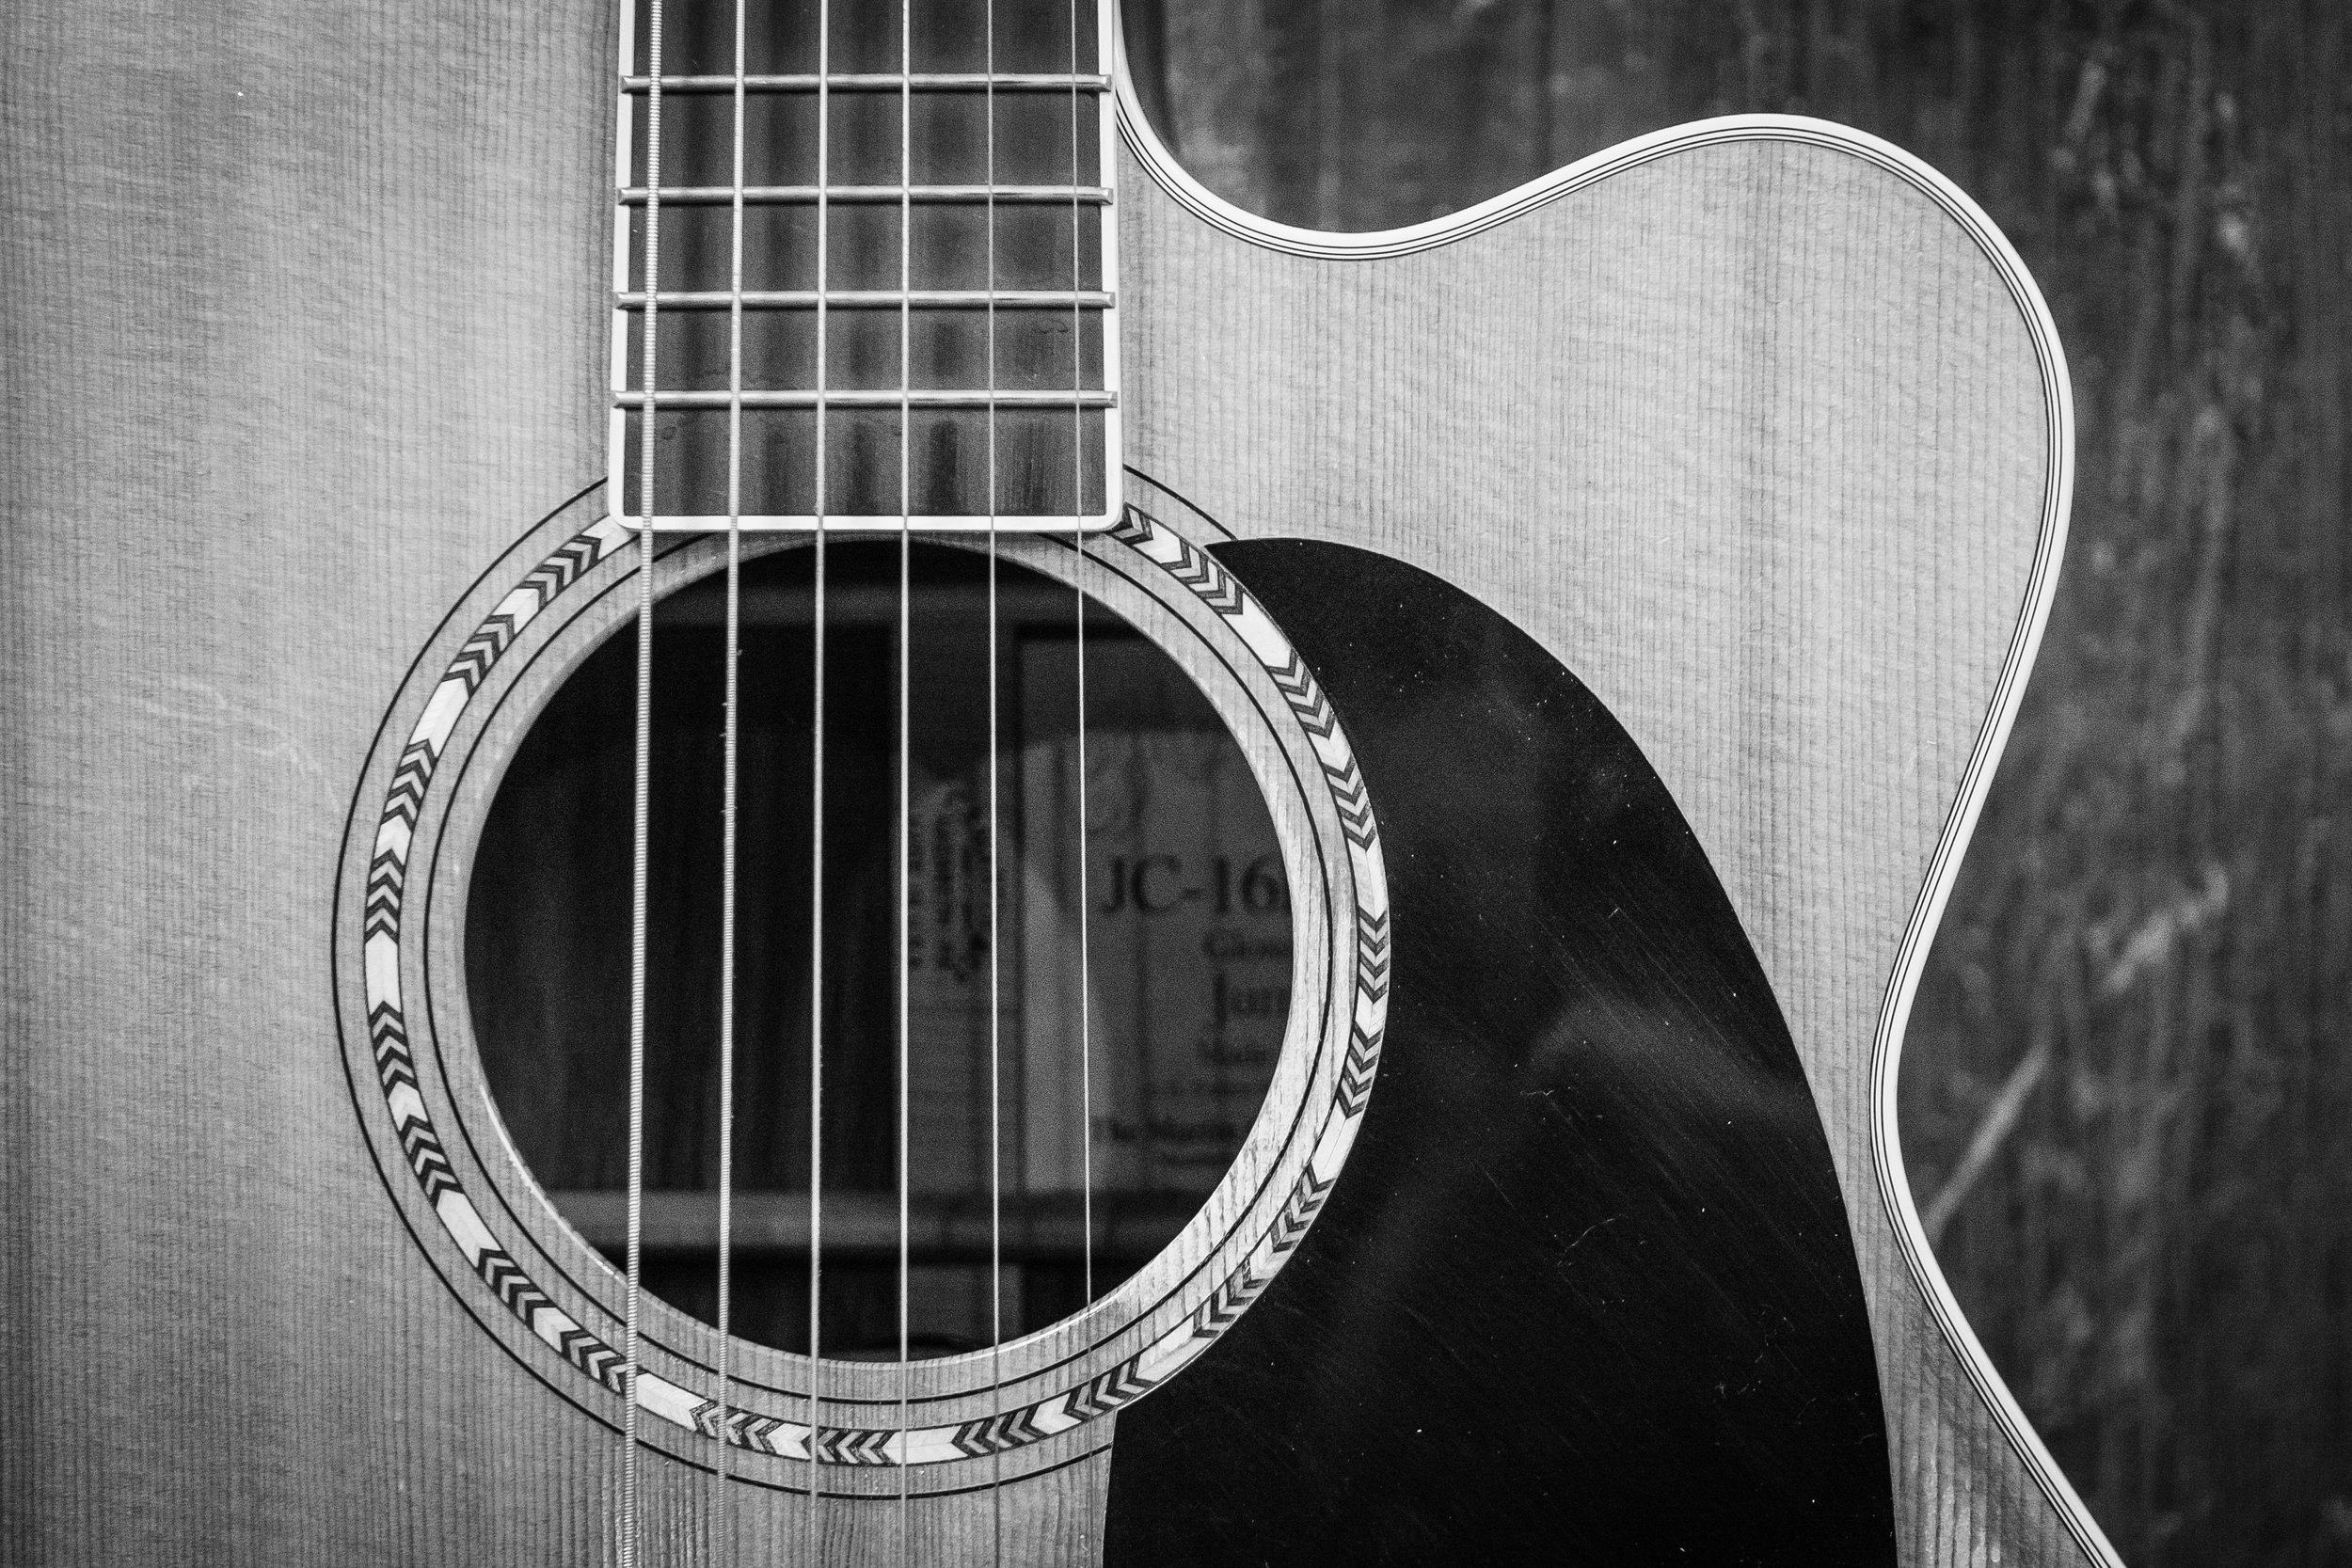 black-and-white-bowed-stringed-instrument-classic-1010518.jpg